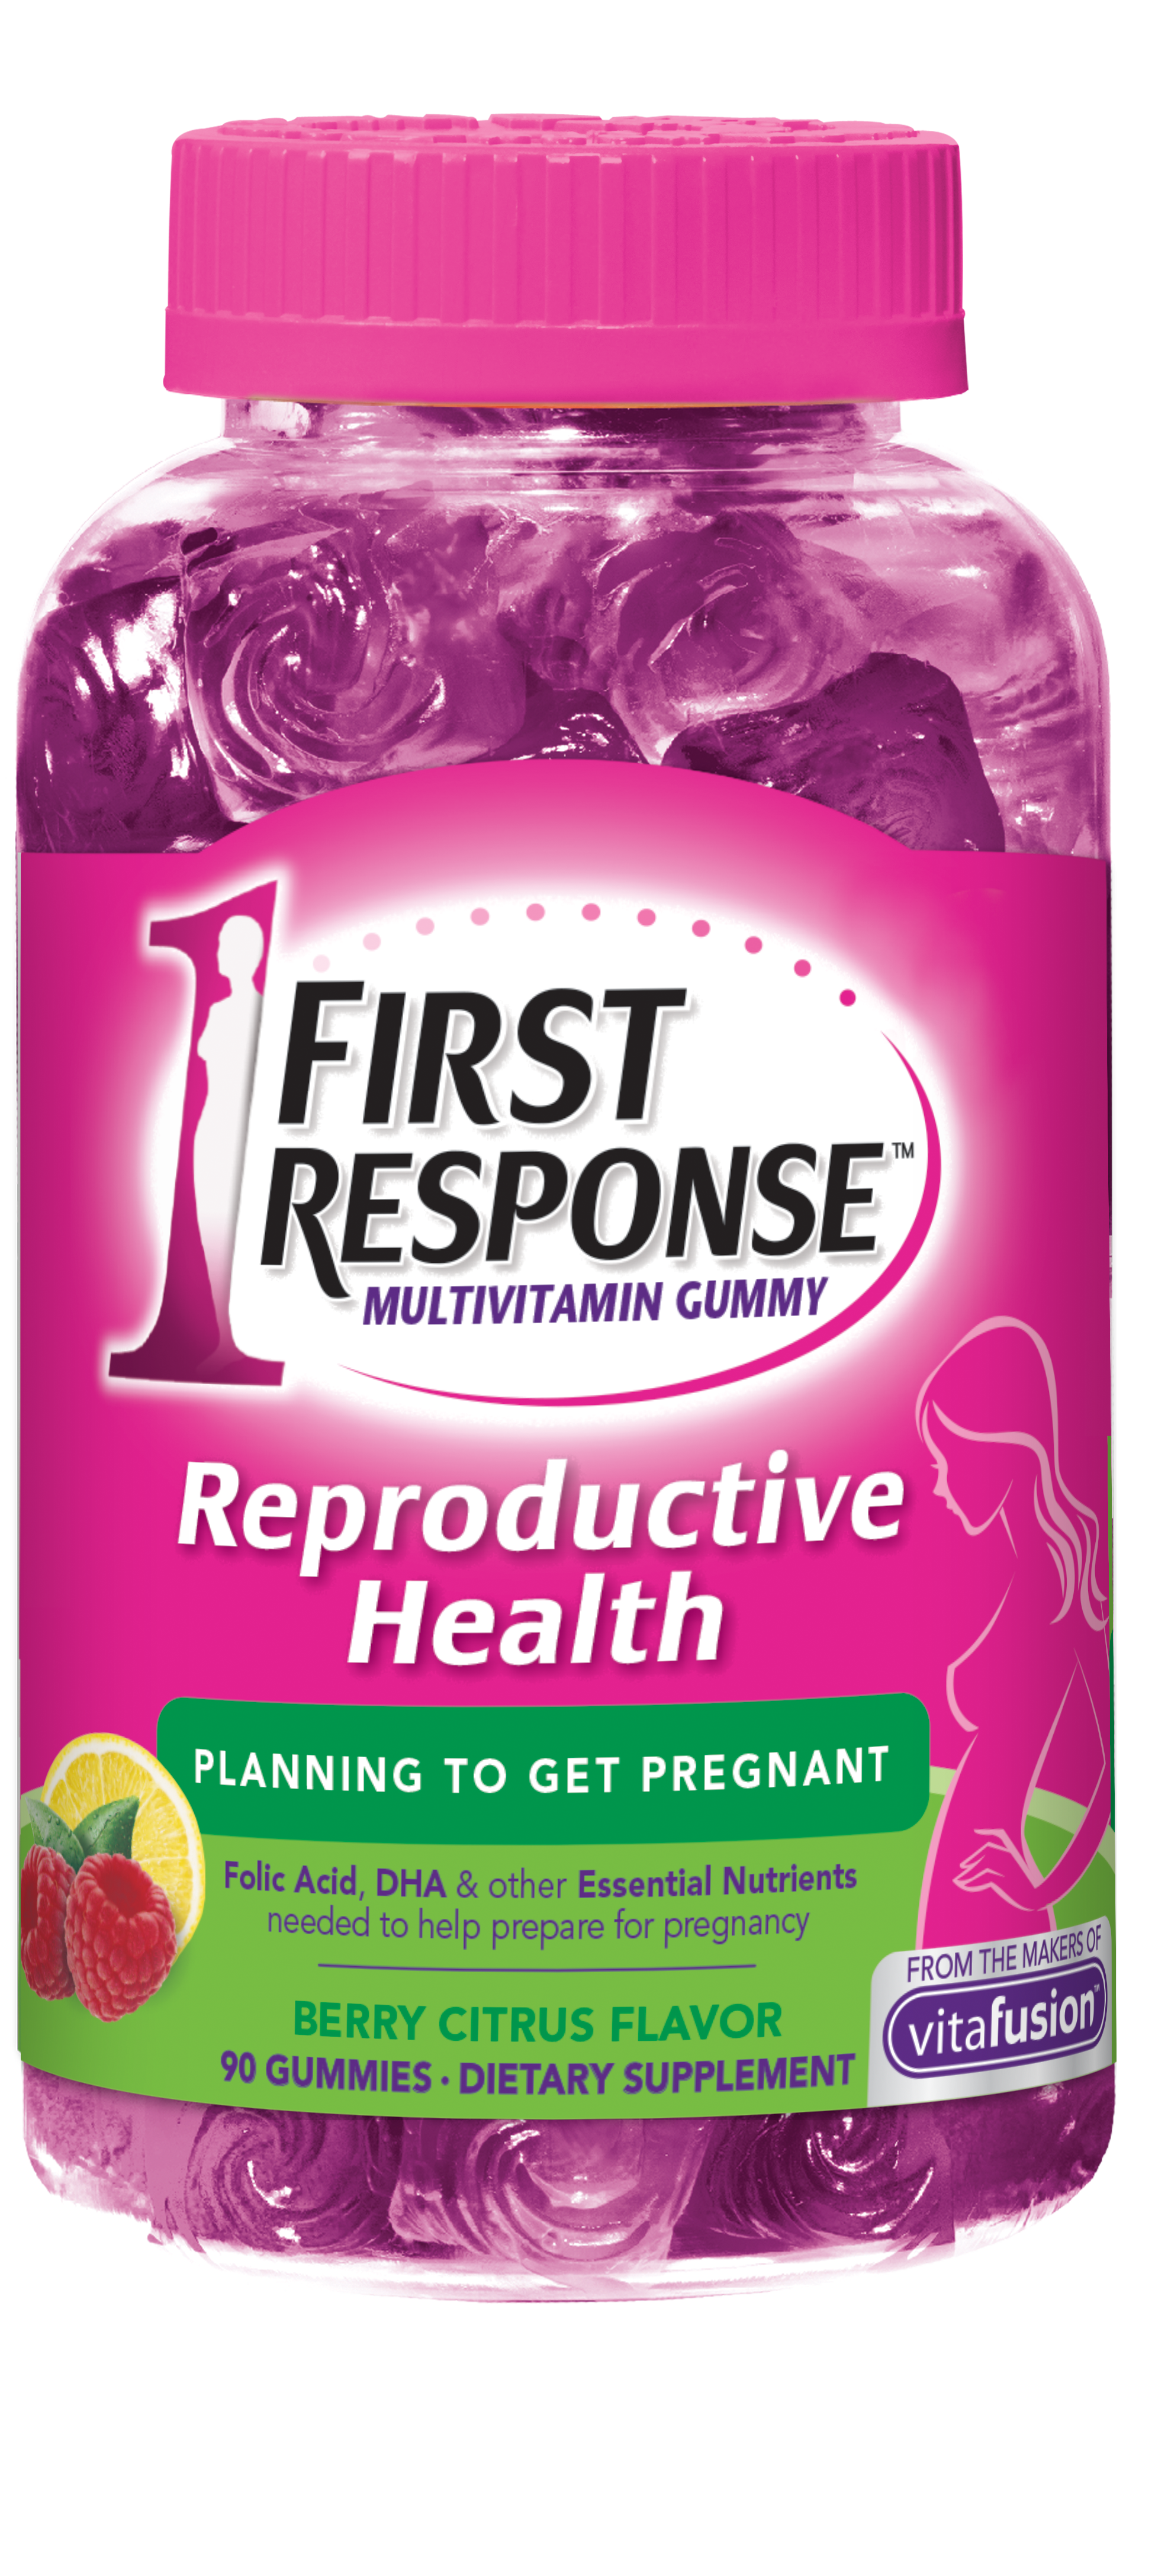 Reproductive Health Multivitamin Gummies | First Response | FIRST